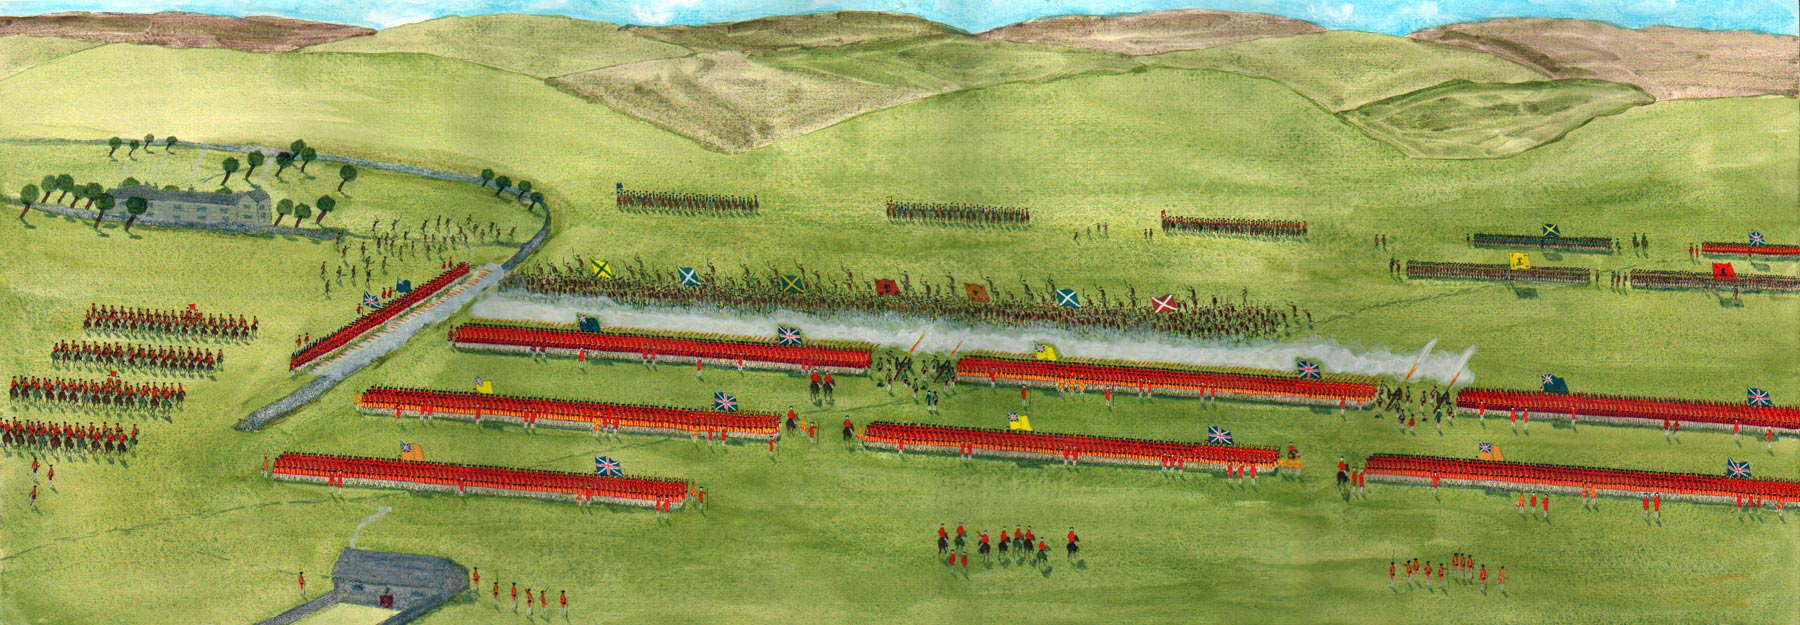 The Highland Attack: Battle of Culloden 16th April 1746 in the Jacobite Rebellion: picture by John Fawkes